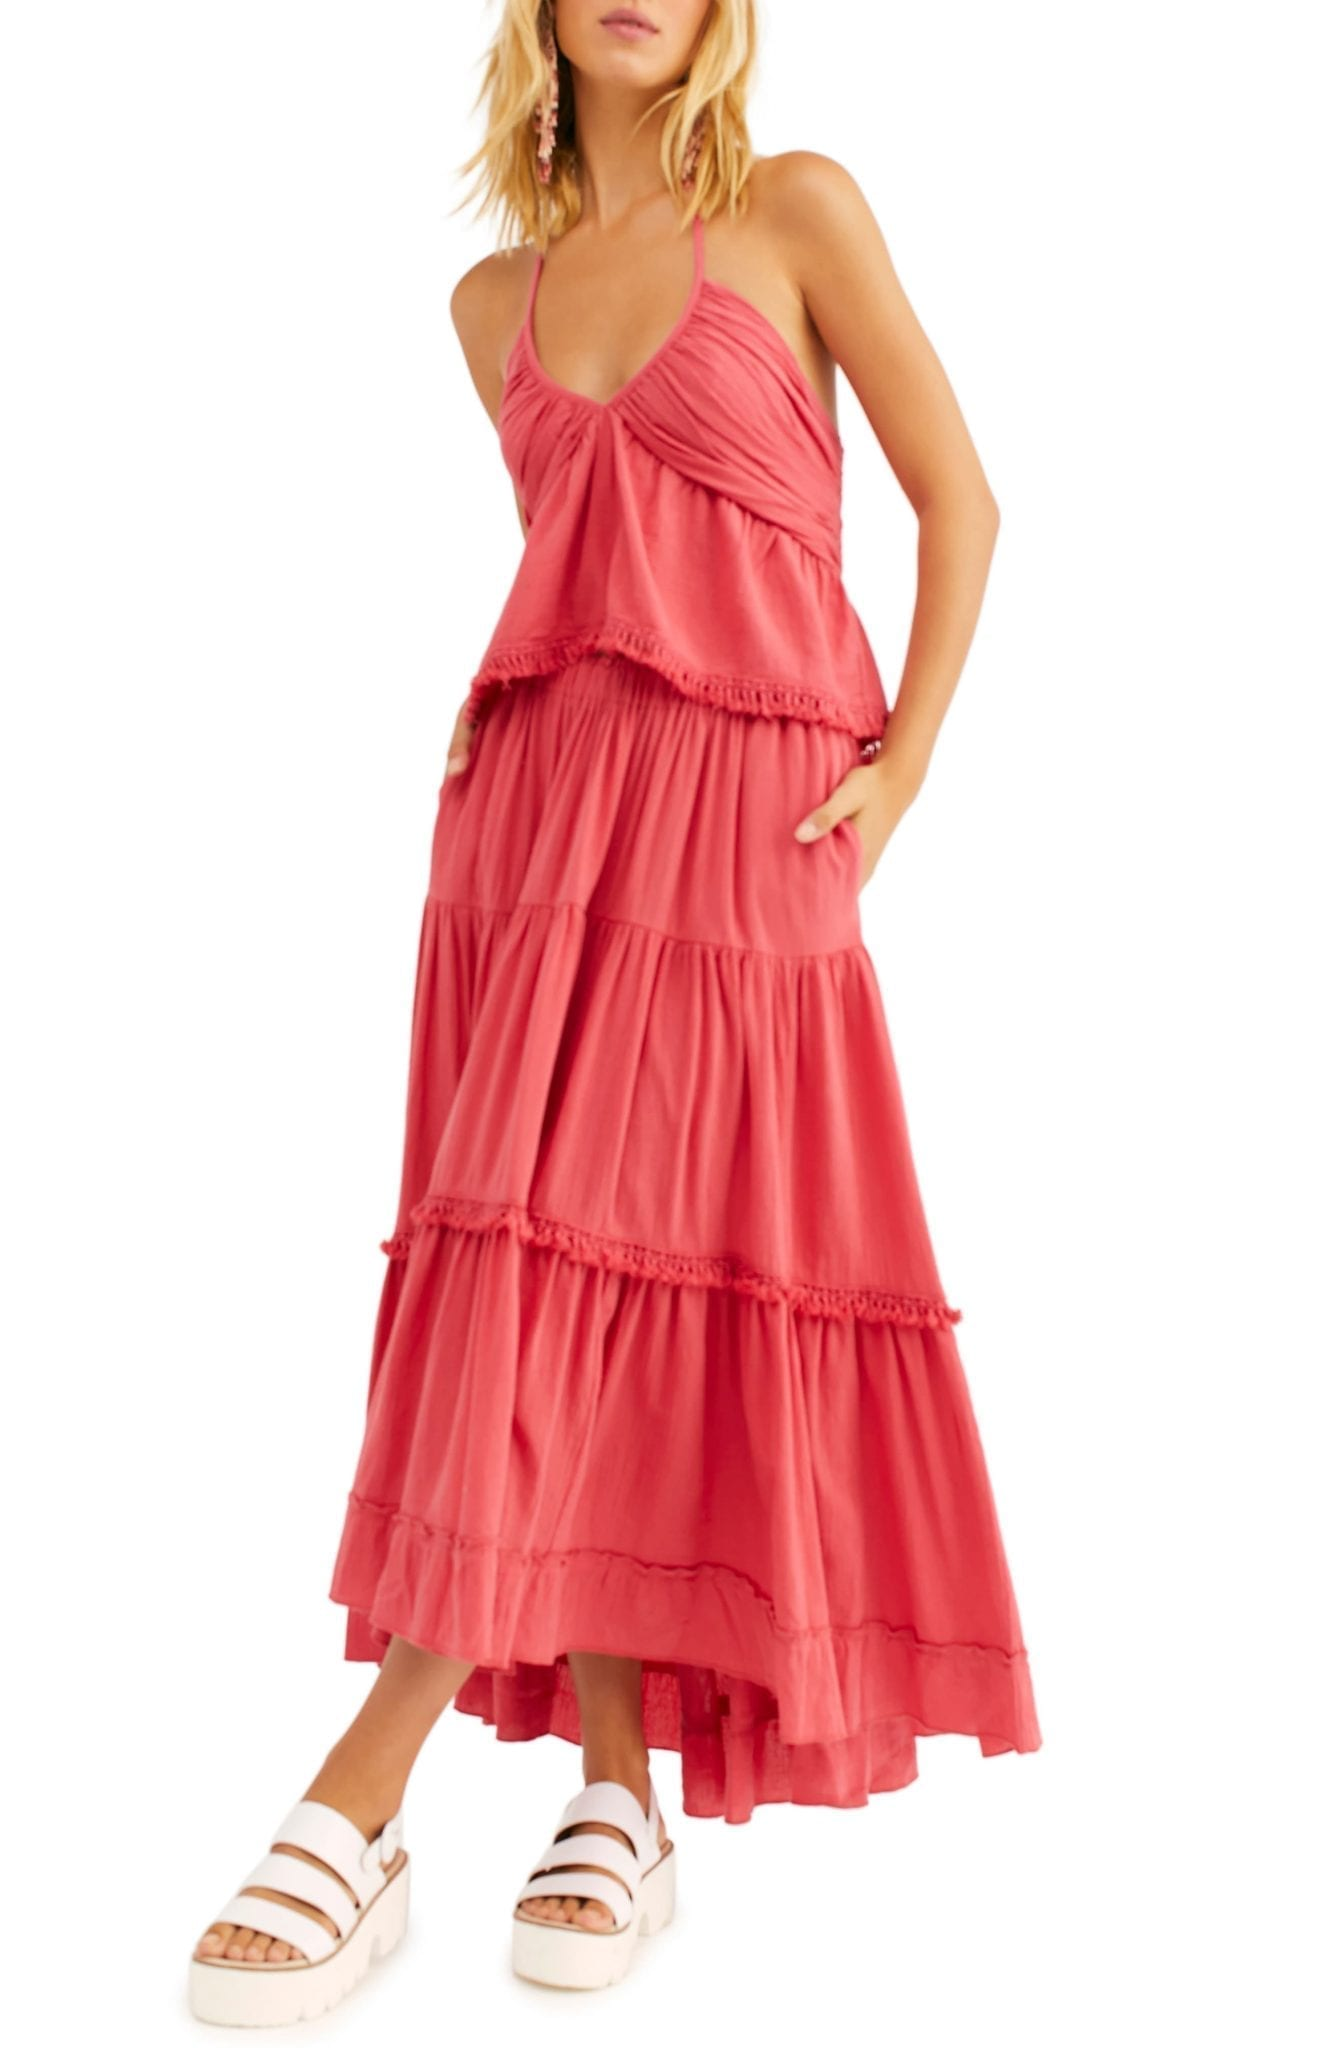 FREE PEOPLE Kahlo Halter Top & Maxi Skirt Dress